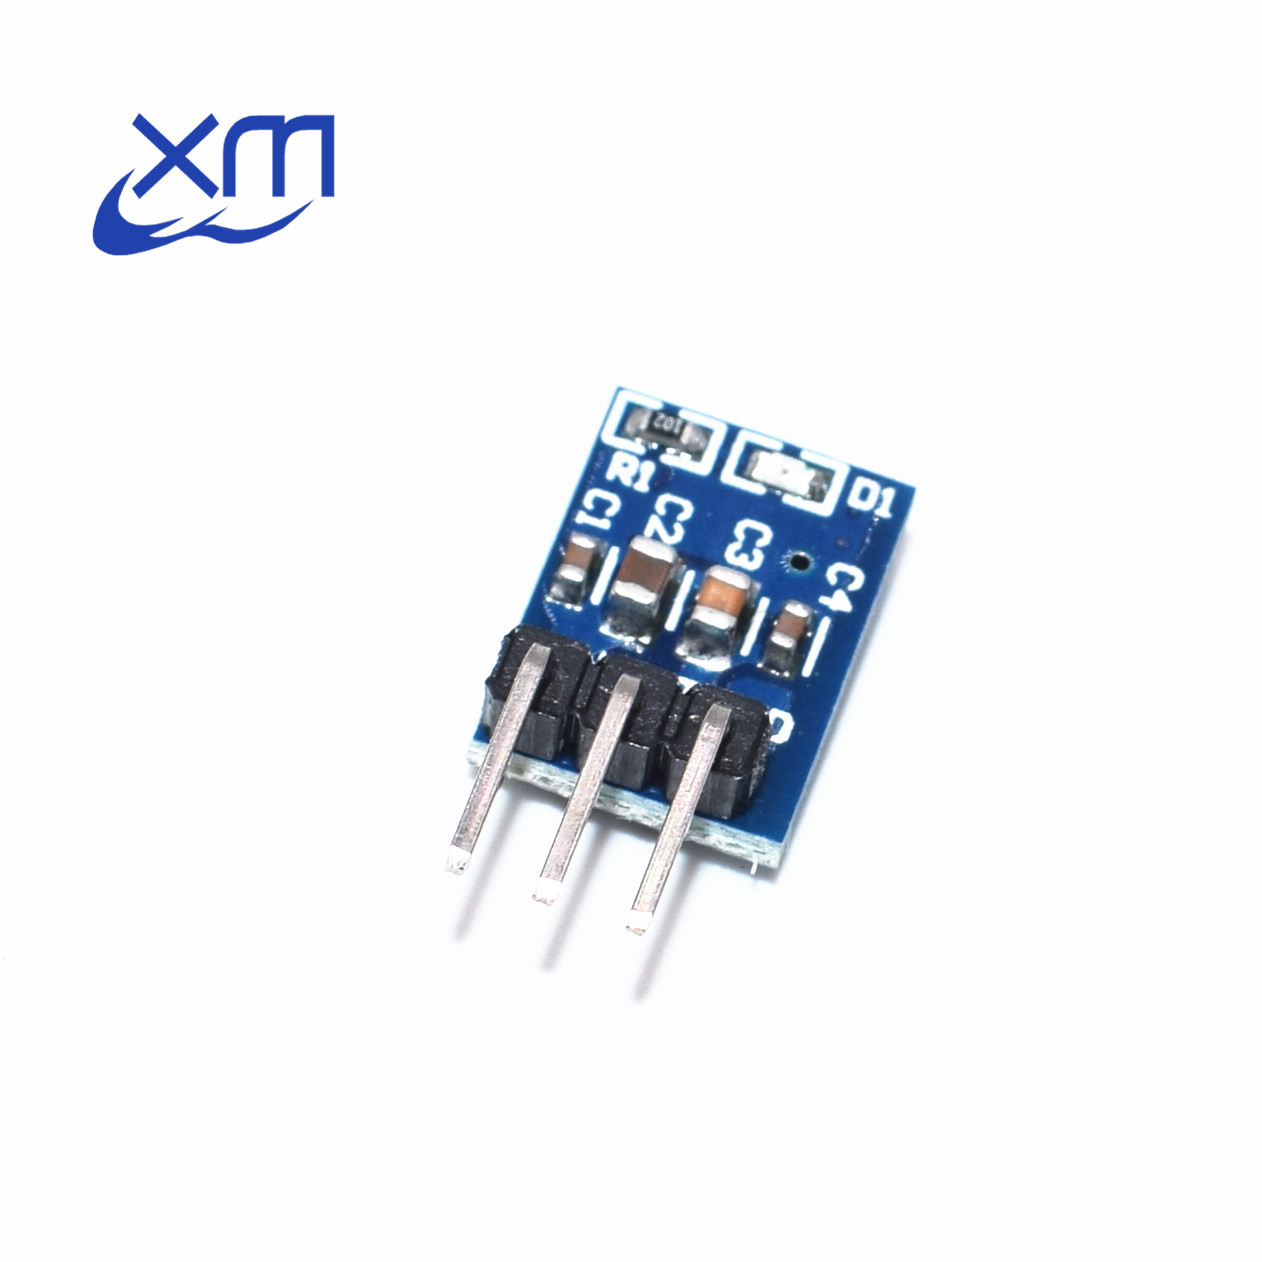 AMS1117-3.3 LDO 800MA DC 5V to 3.3V Step-Down Power Supply Module 5pcs I54 image